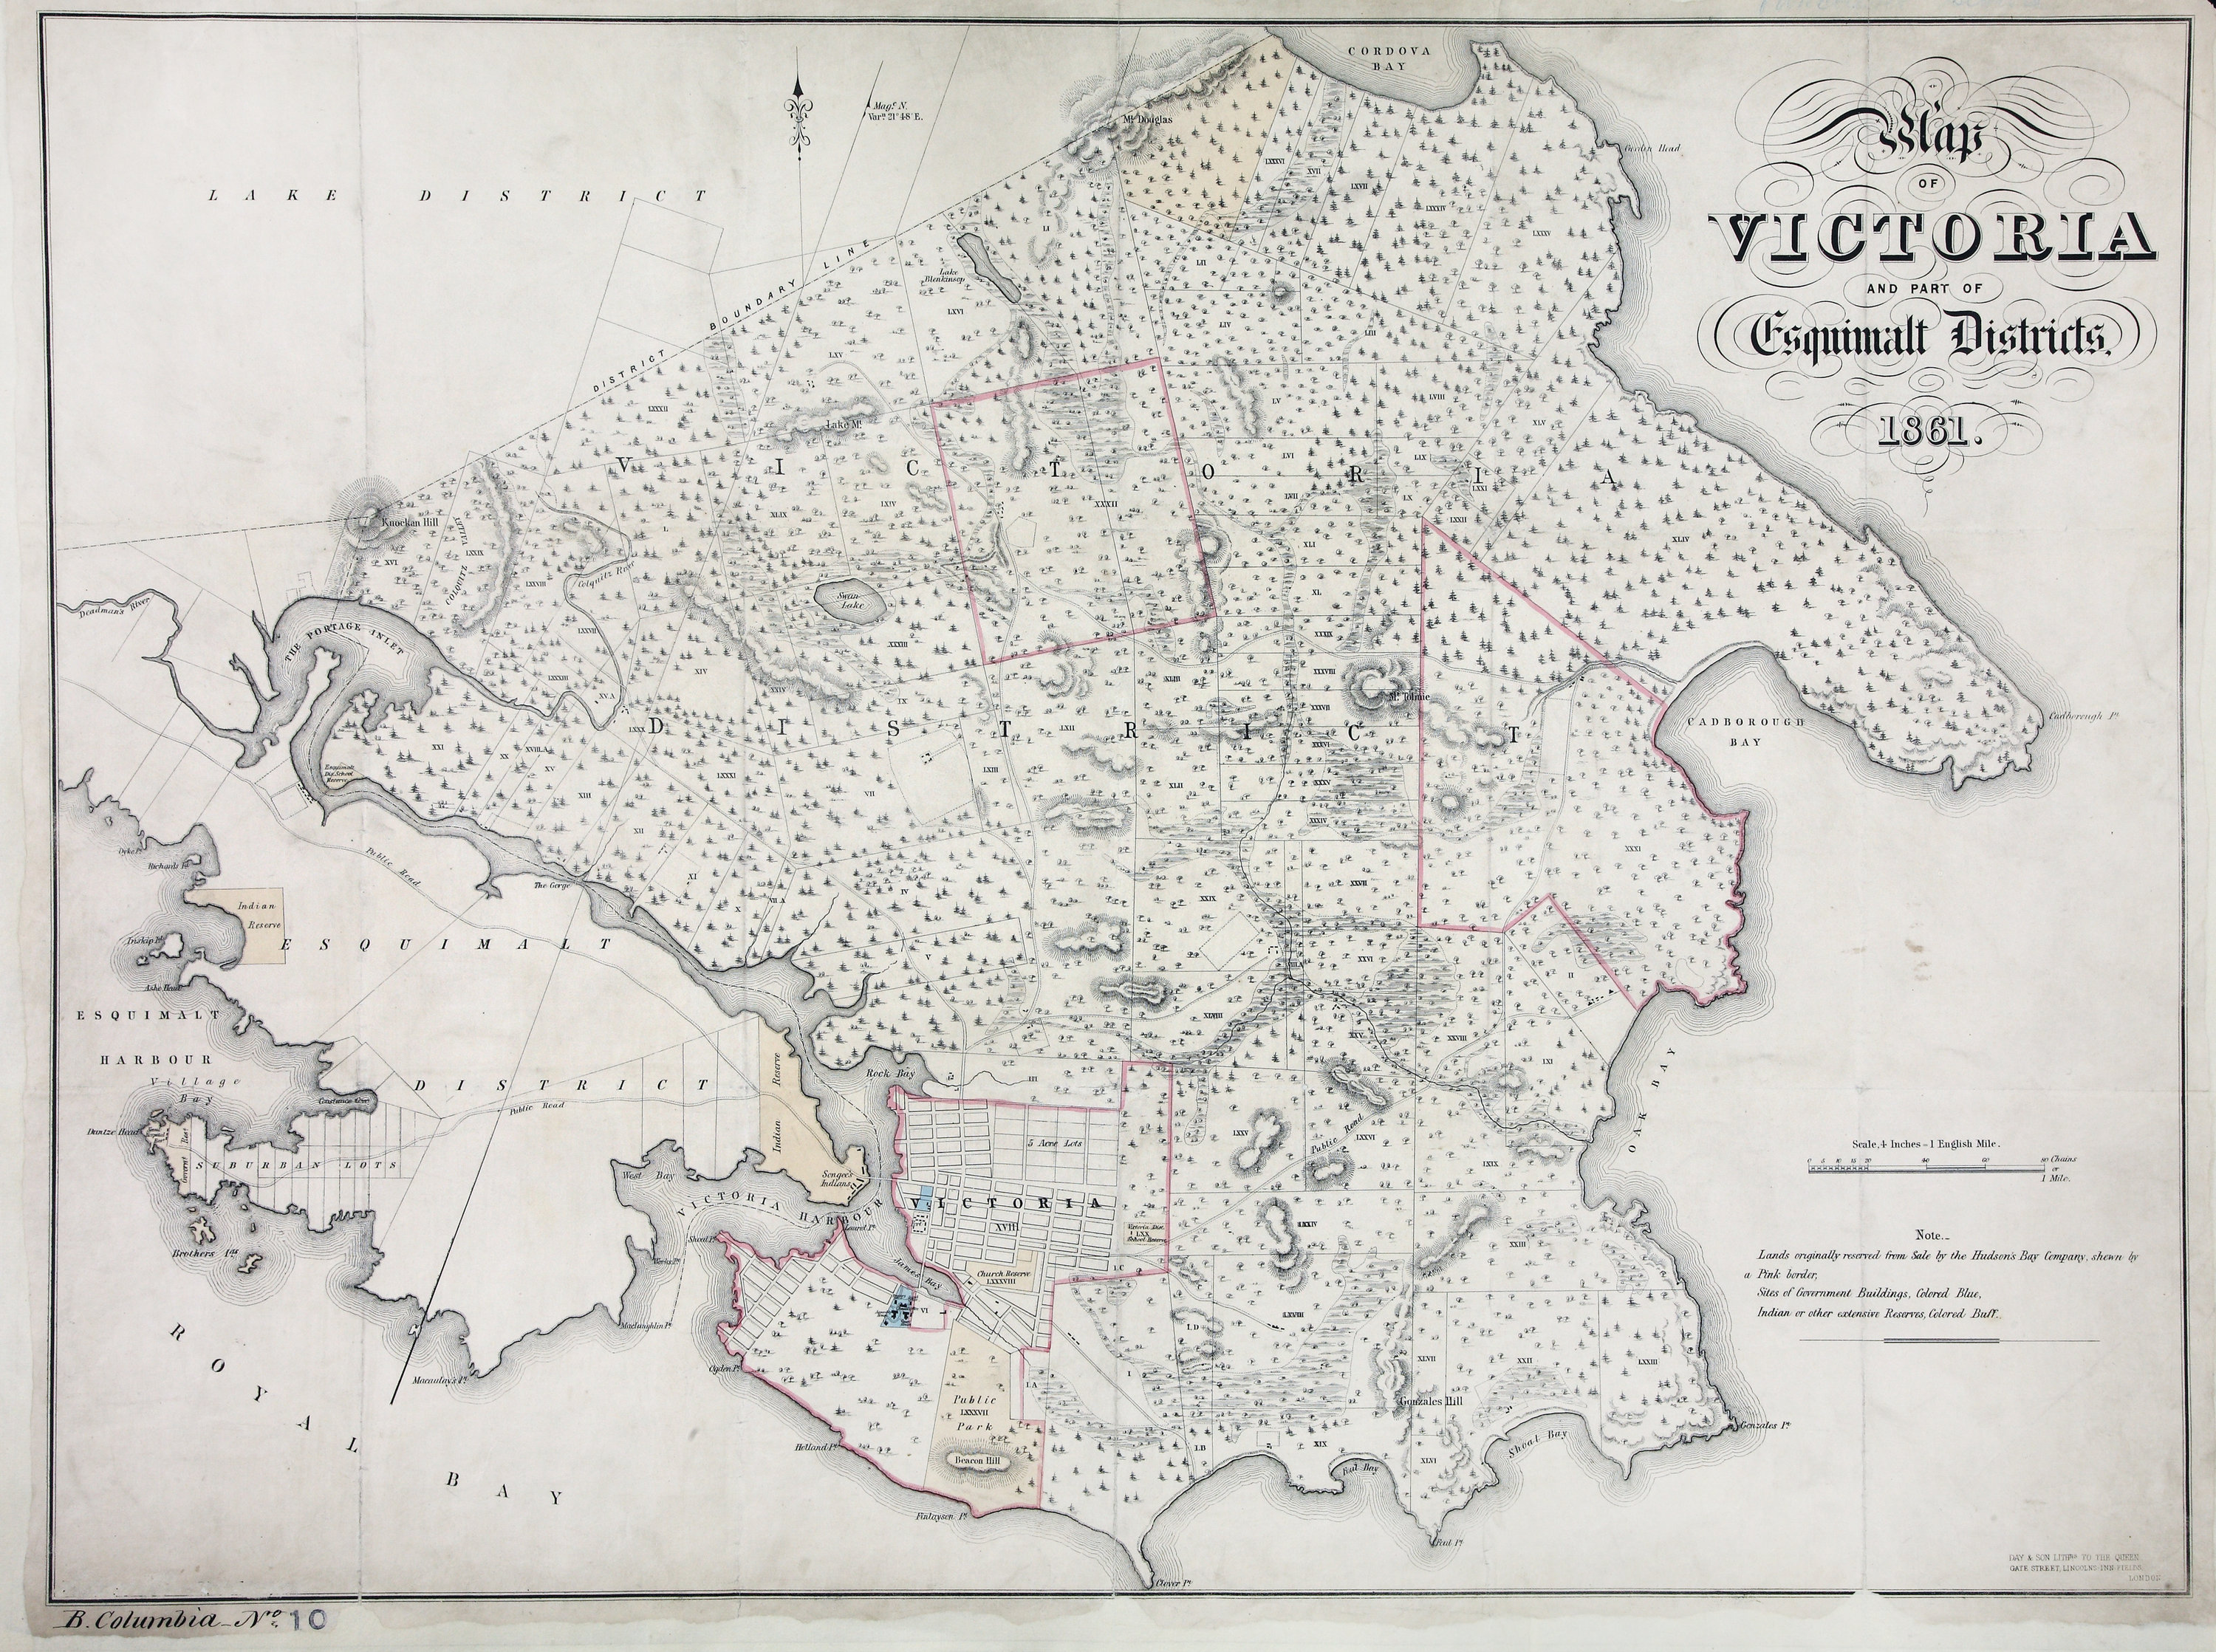 Map of Victoria and part of Esquimalt Districts, 1861.